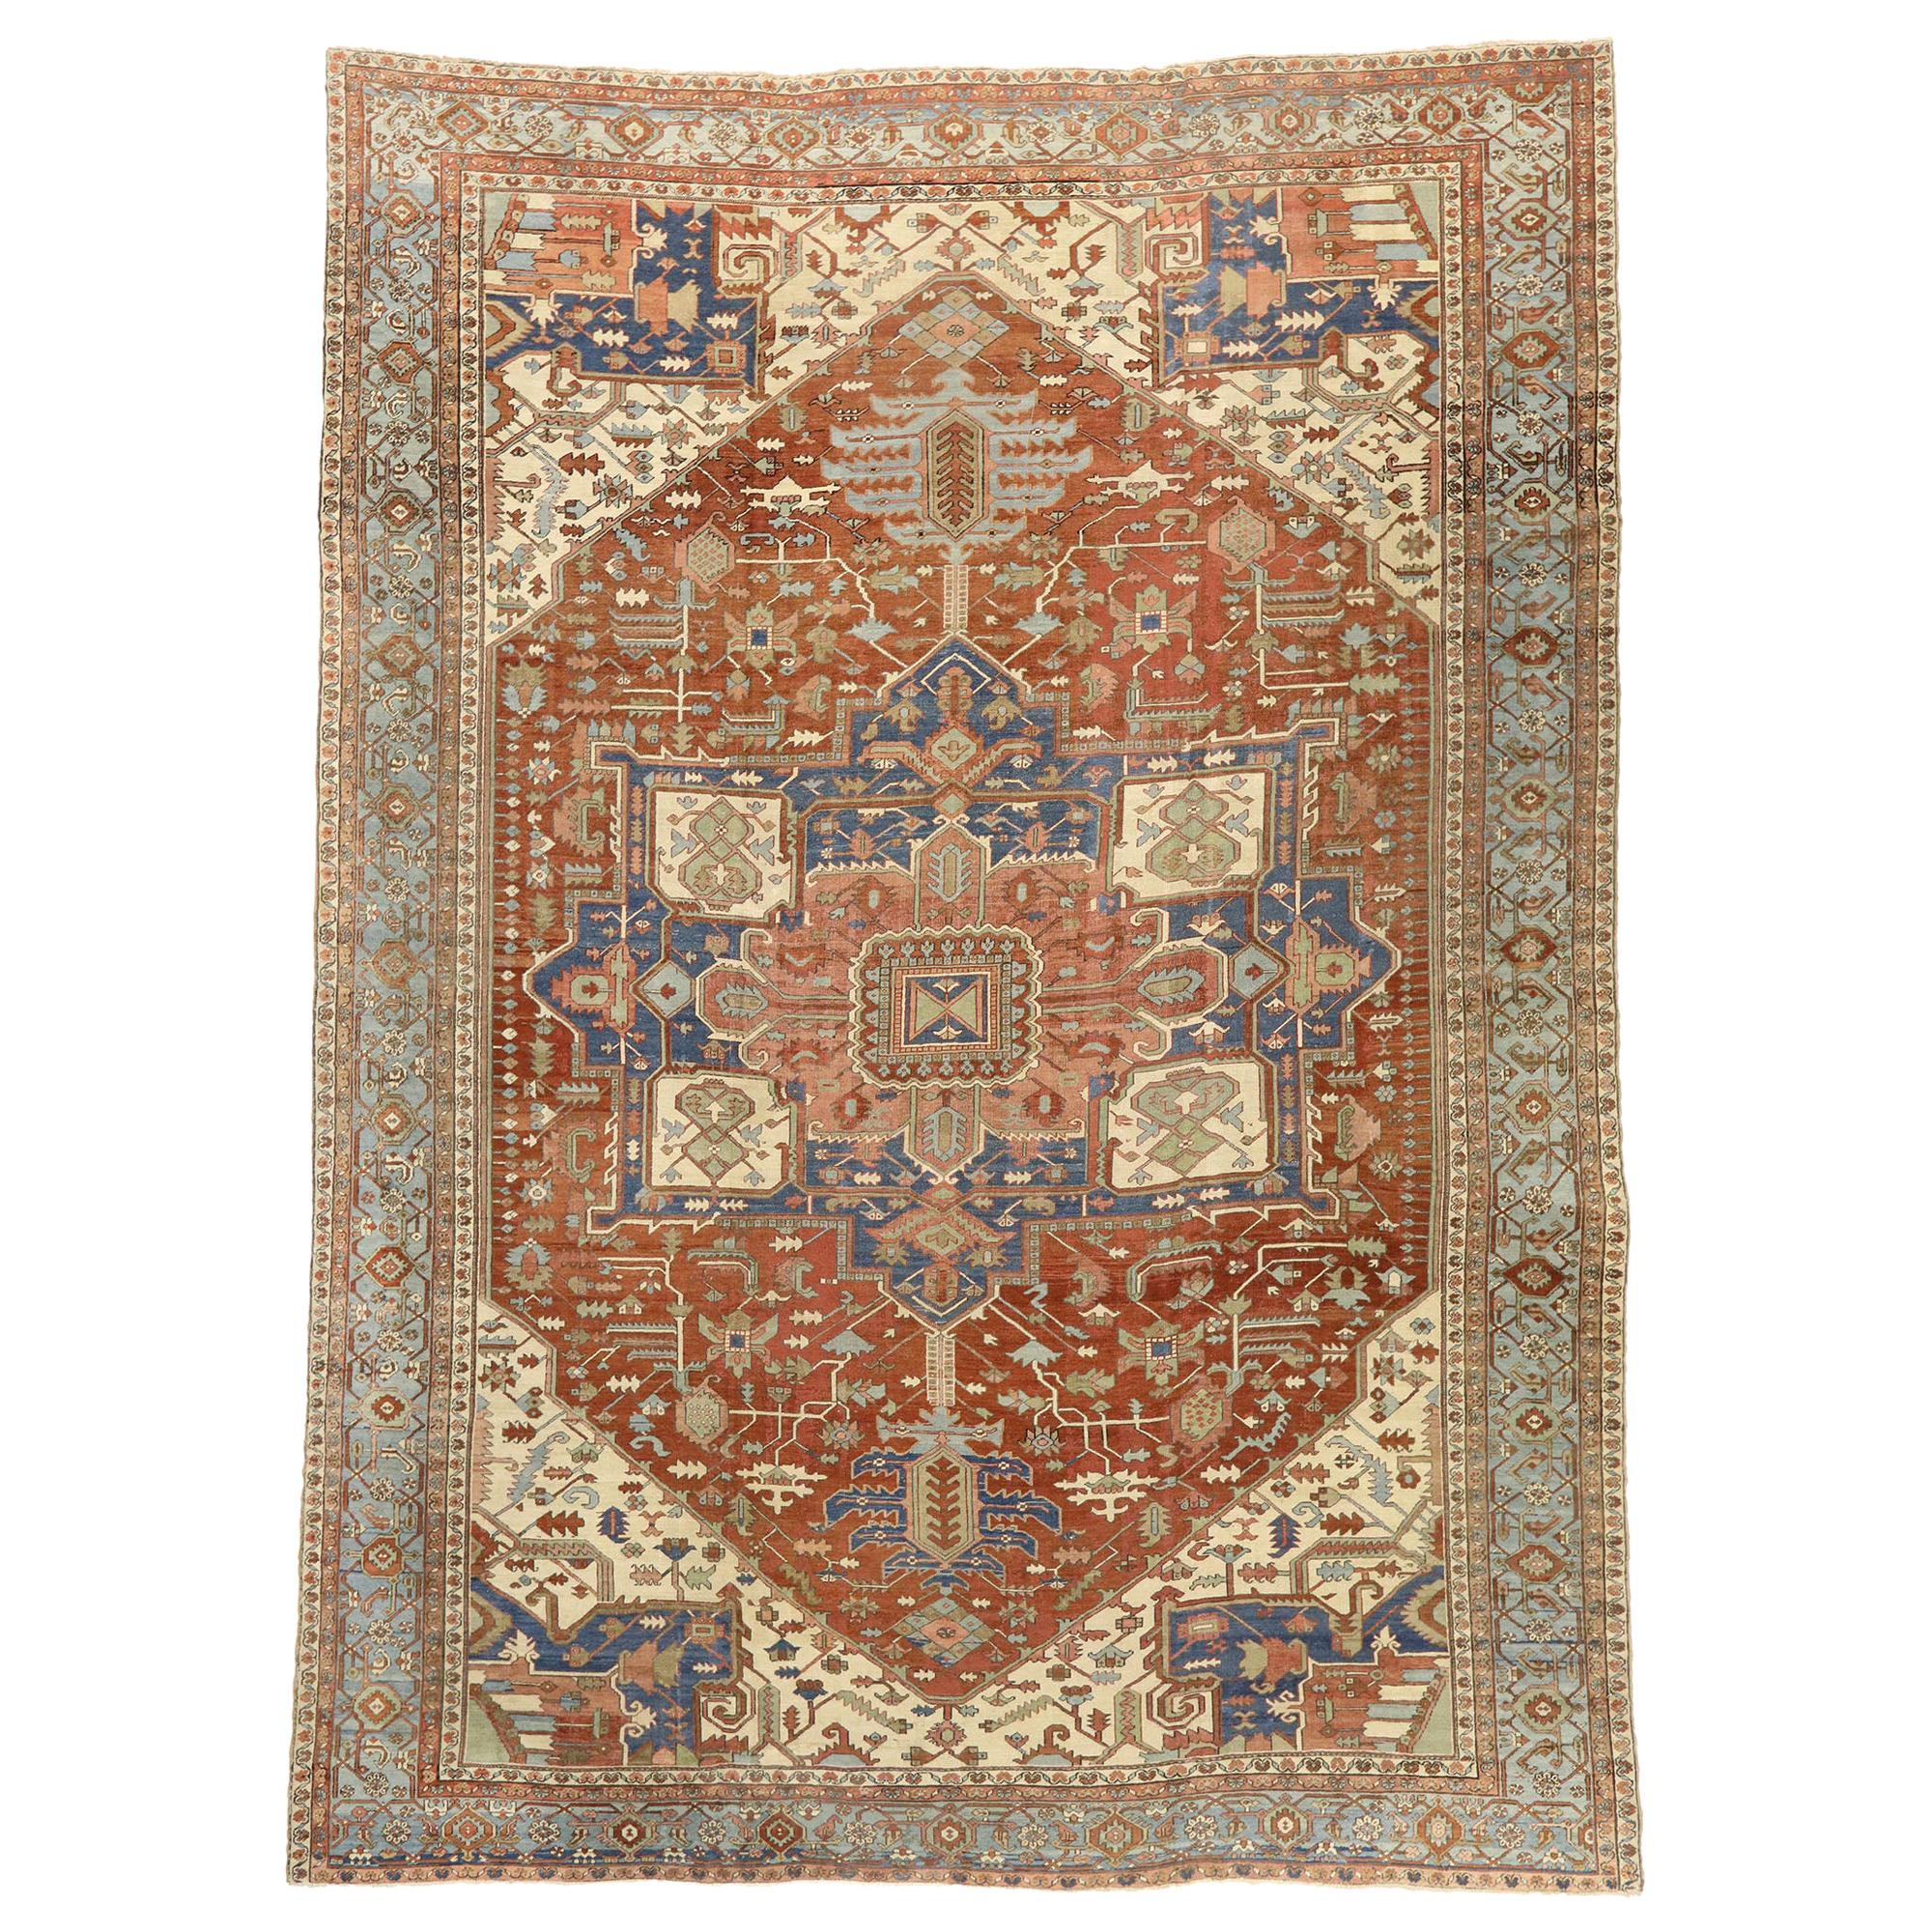 Late 19th Century Antique Persian Serapi Rug with Modern Design